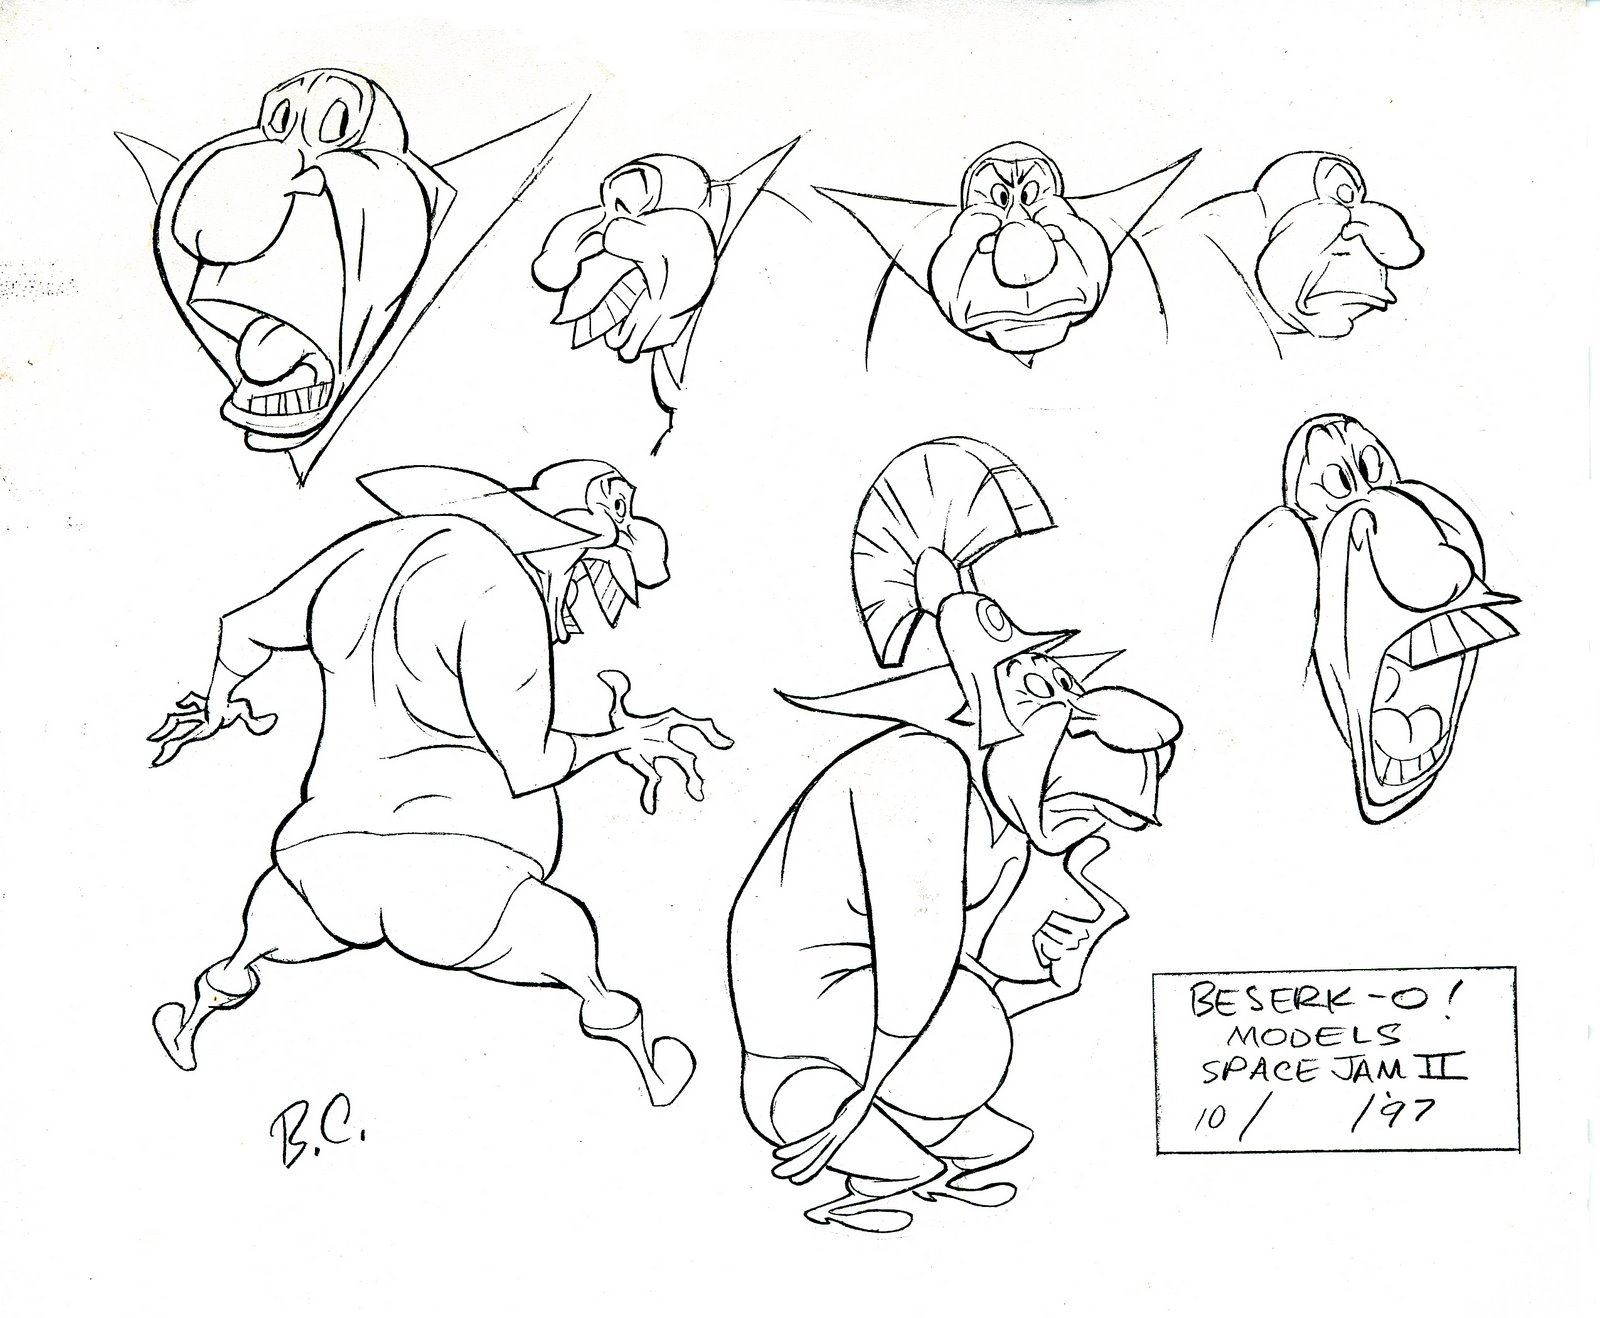 space jam 2 cancelled sequel space jam wiki fandom powered by wikia - Space Jam Monstars Coloring Pages